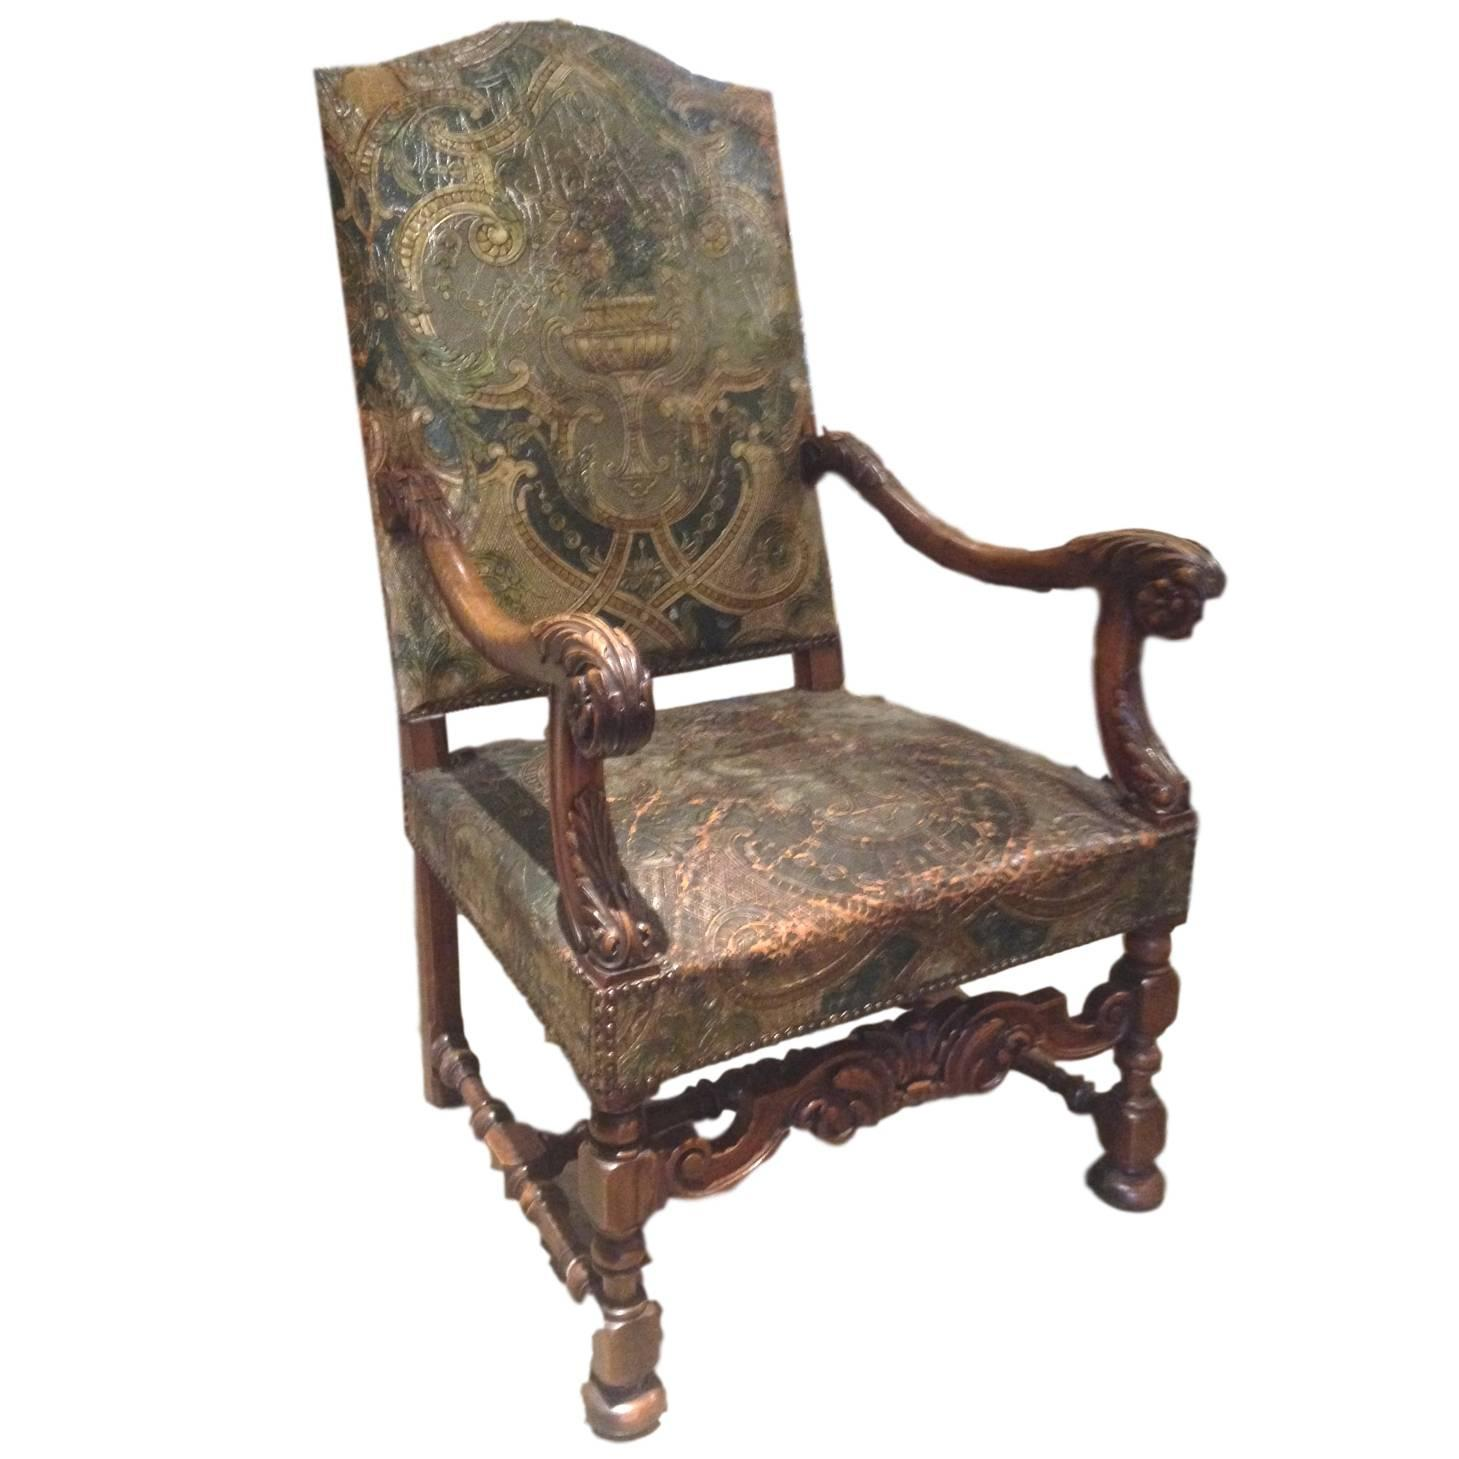 19th Century French Embossed Leather Throne Chair For Sale at 1stdibs